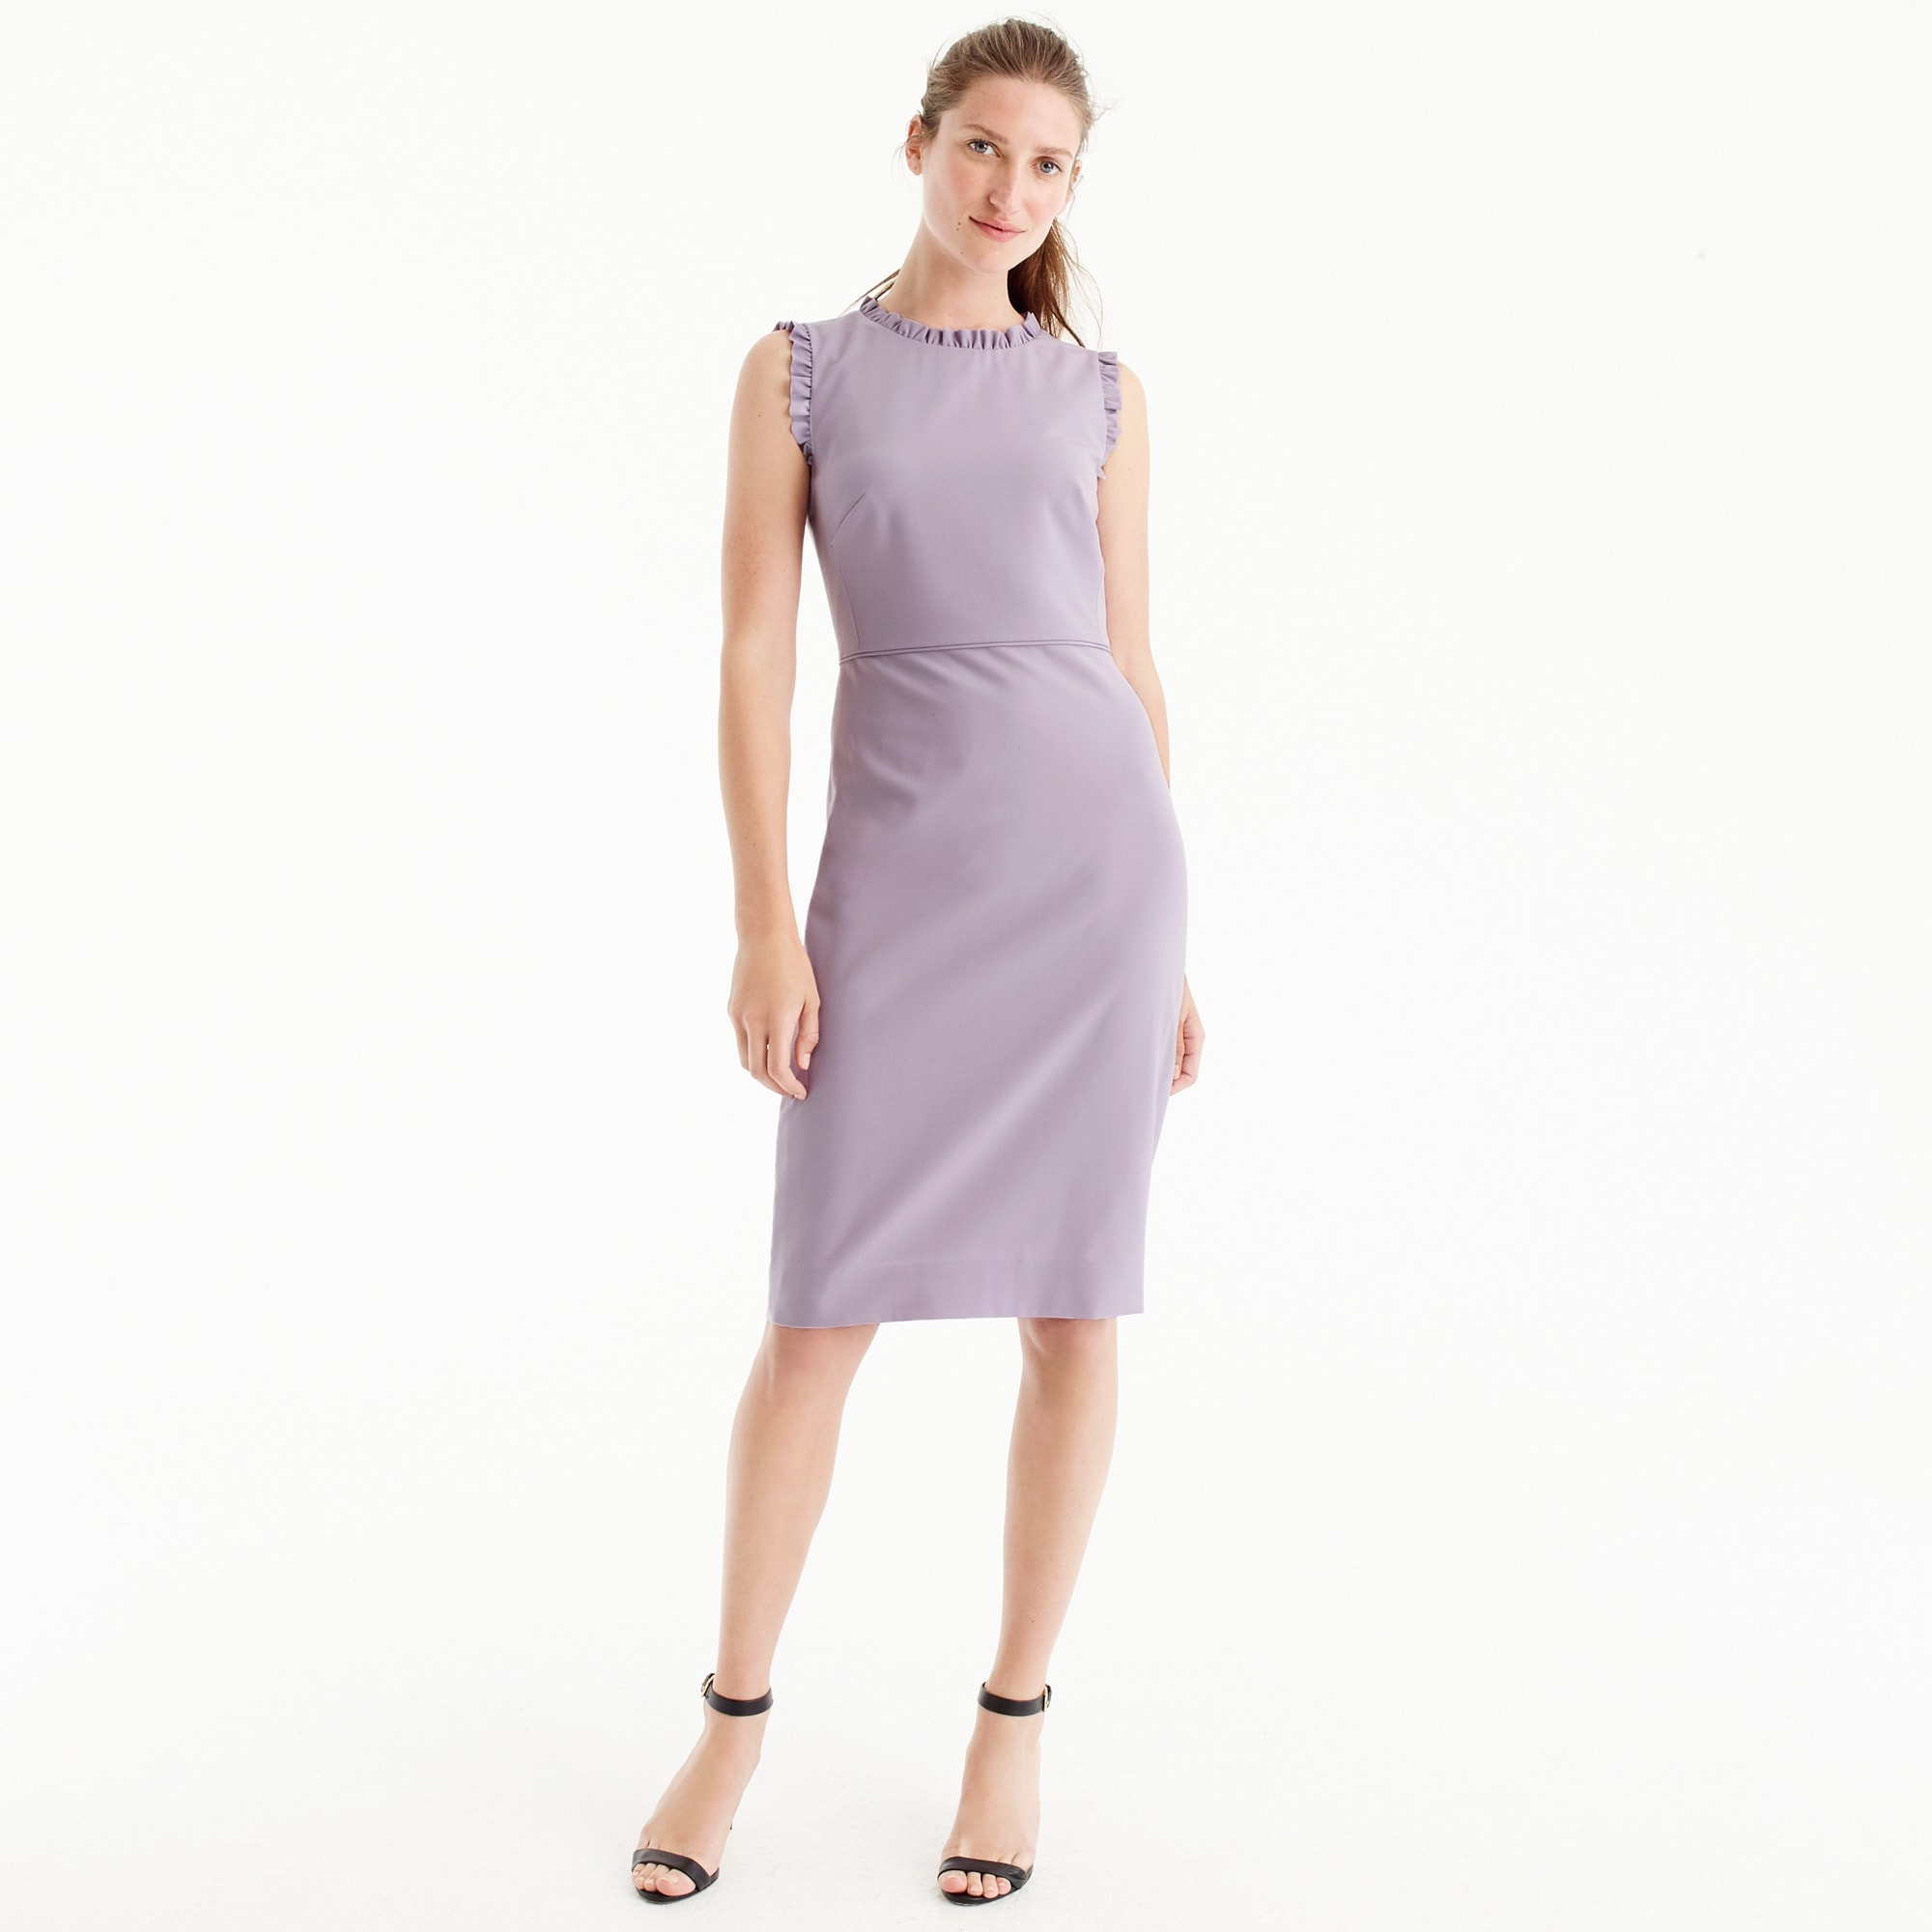 Image 1 for Ruffle-trim dress